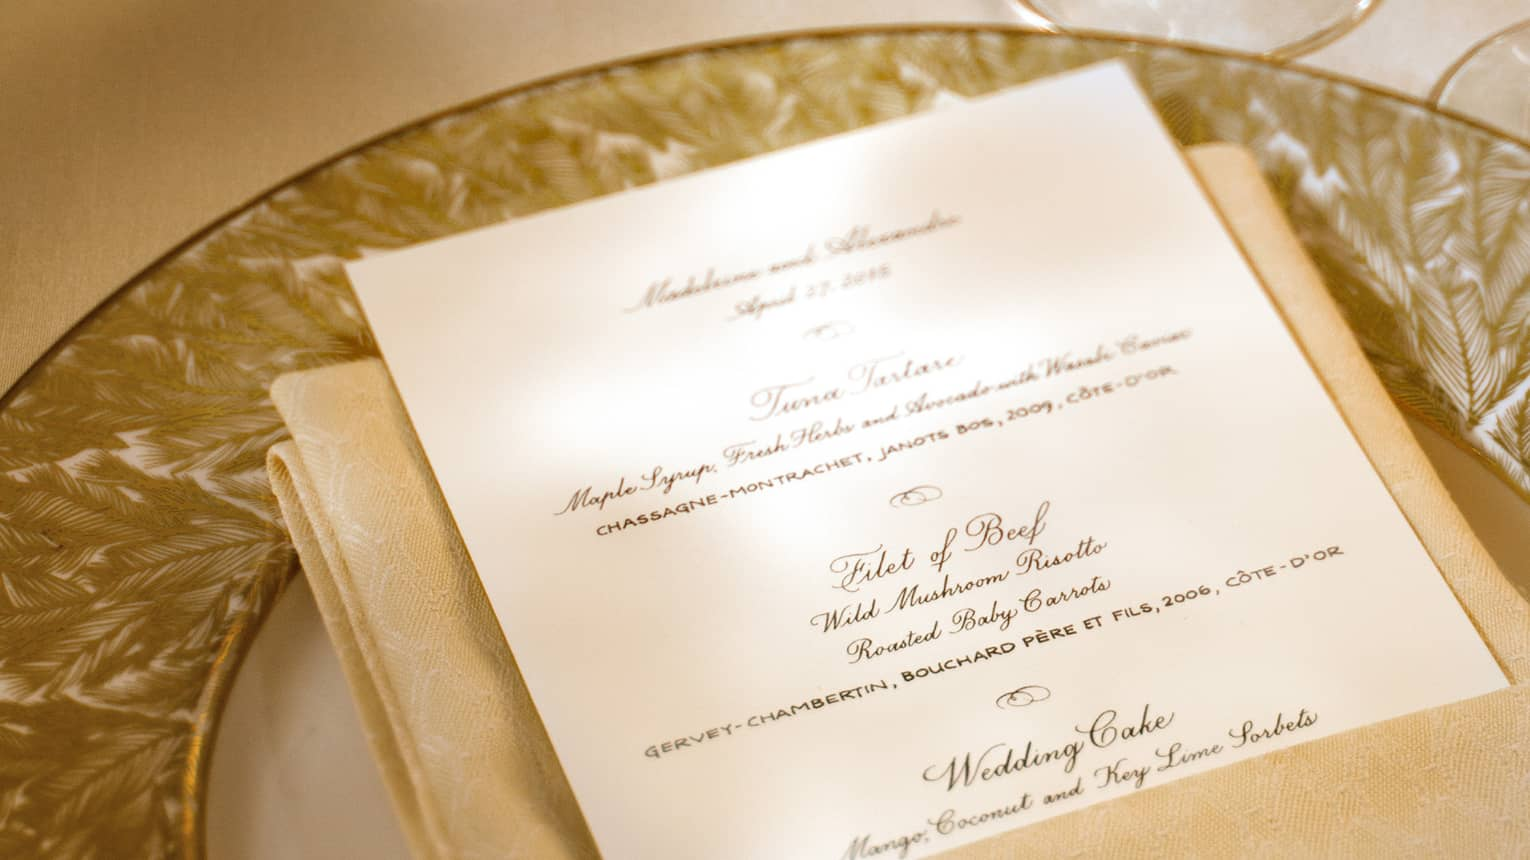 Close-up of wedding menu on gold plate near wine glasses, candles